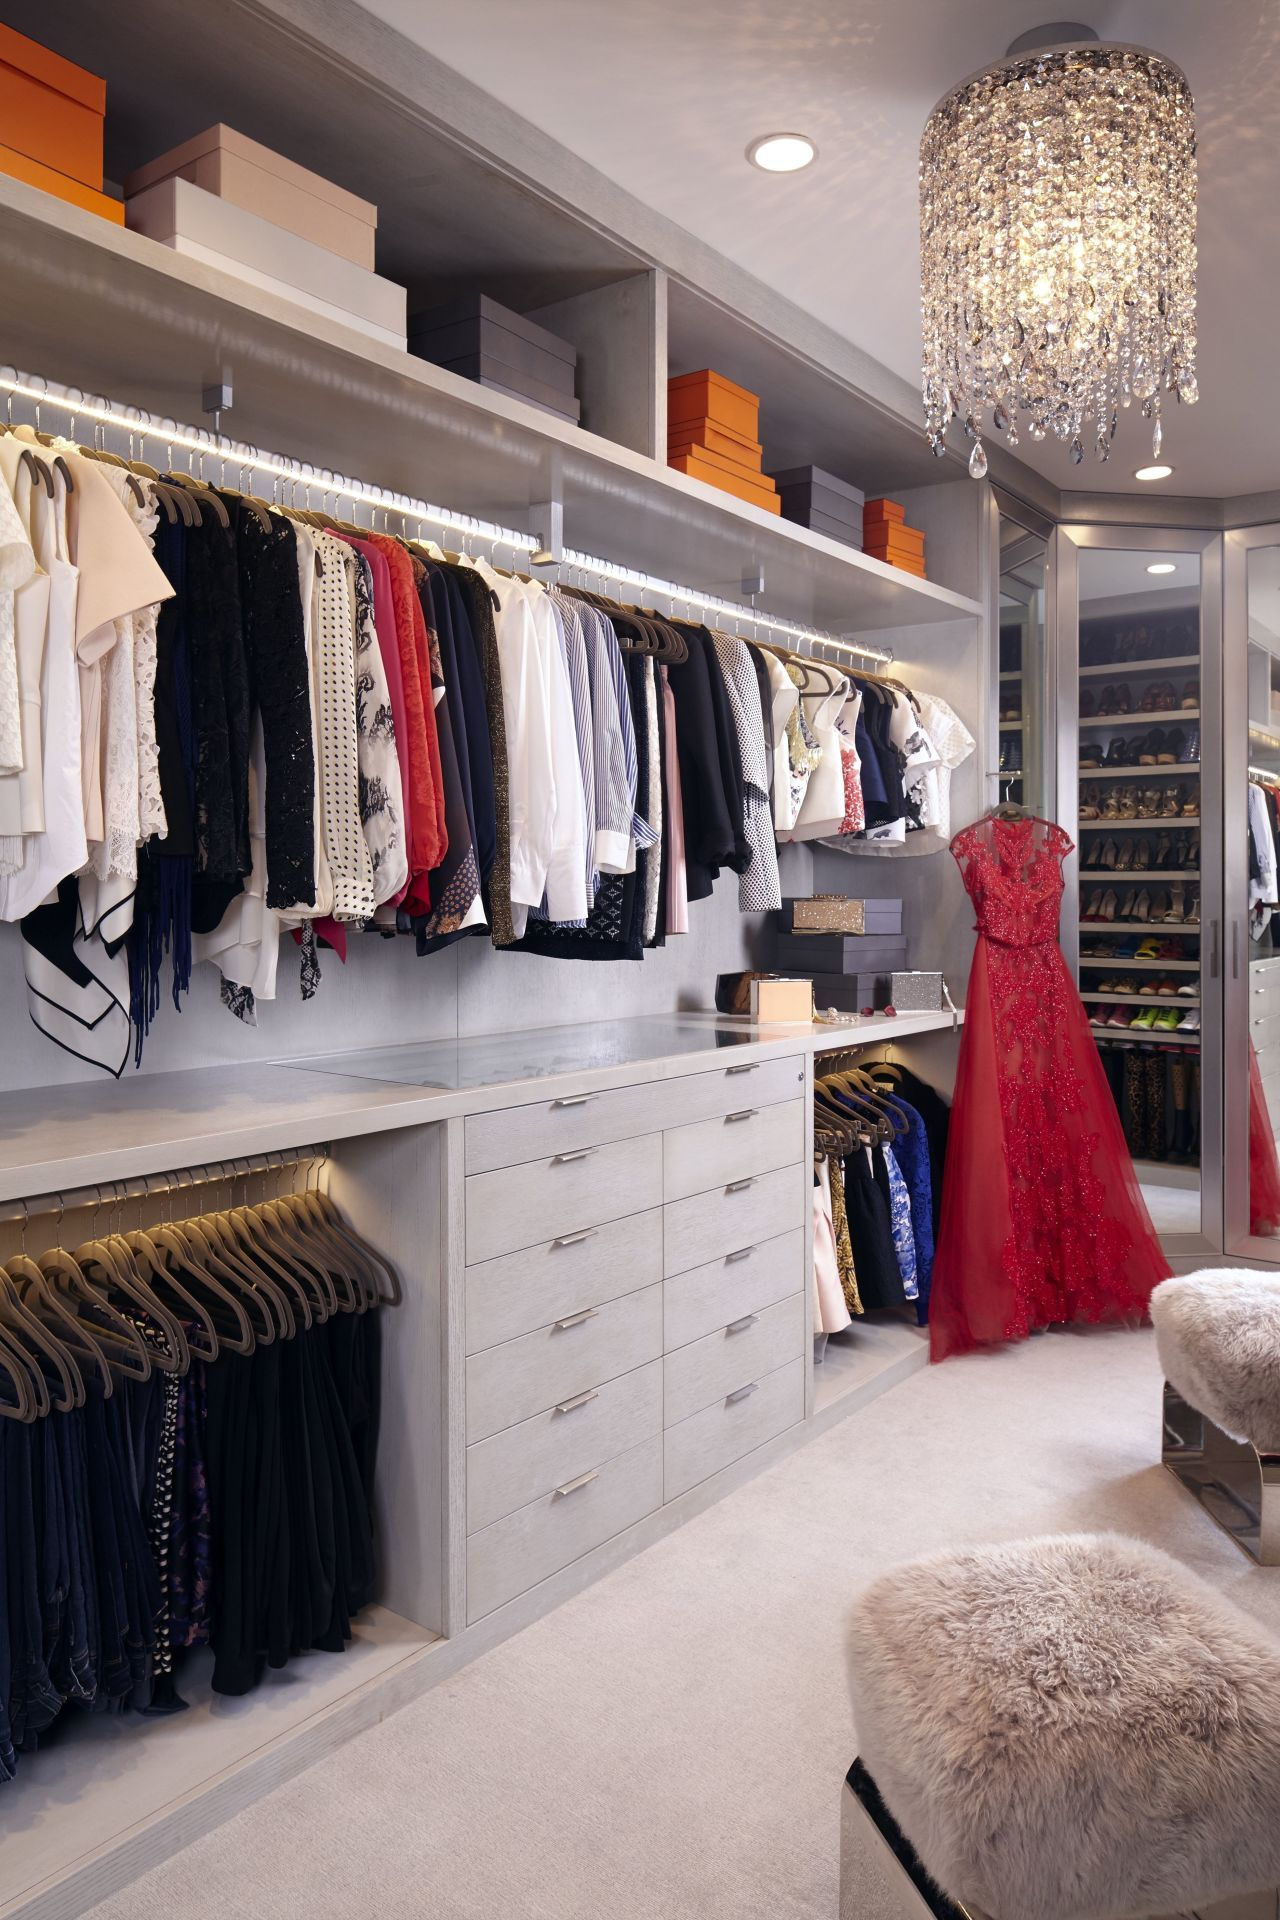 Celebrity Rooms Design: We Found The Celebrity Closet Of Our Dreams